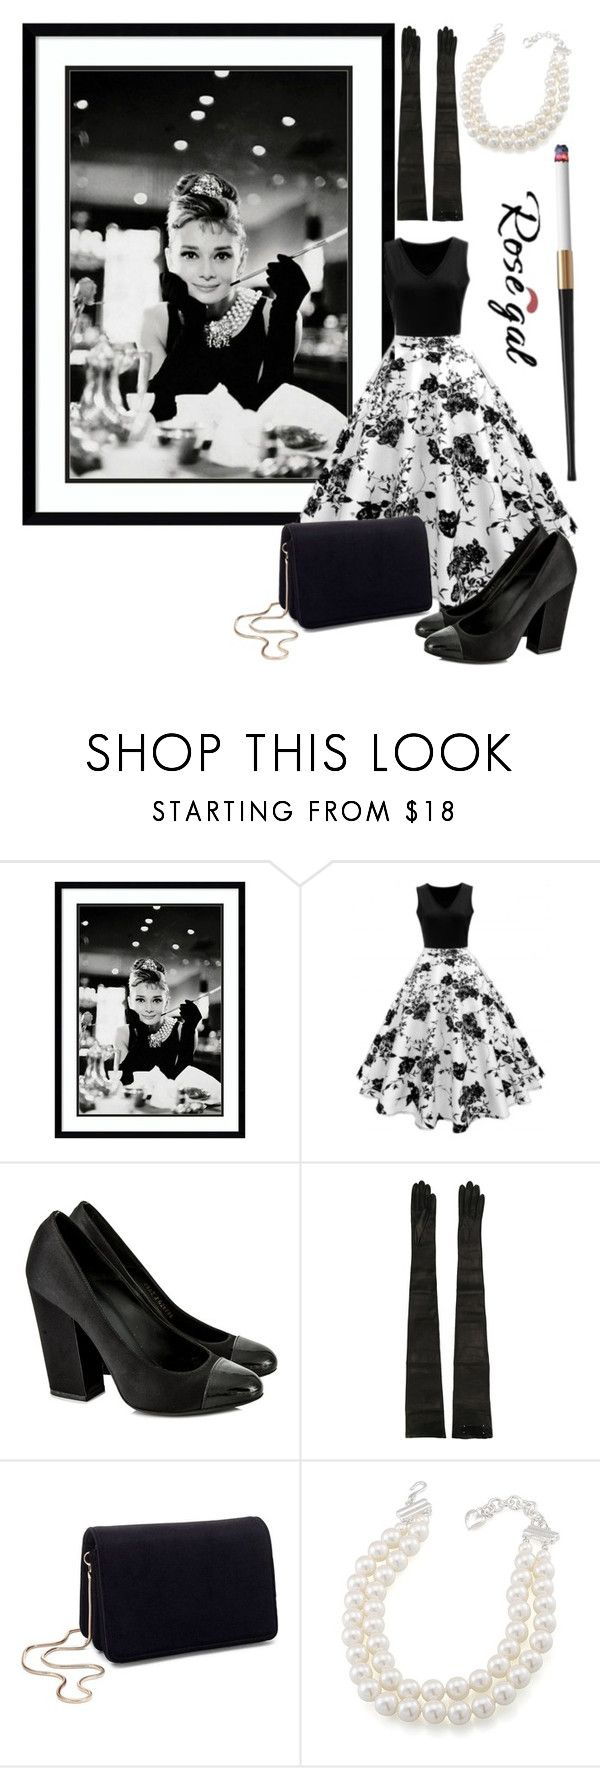 """Untitled #967"" by helenaki65 ❤ liked on Polyvore featuring Amanti Art, Chanel, Maison Margiela, Miss Selfridge and Carolee"